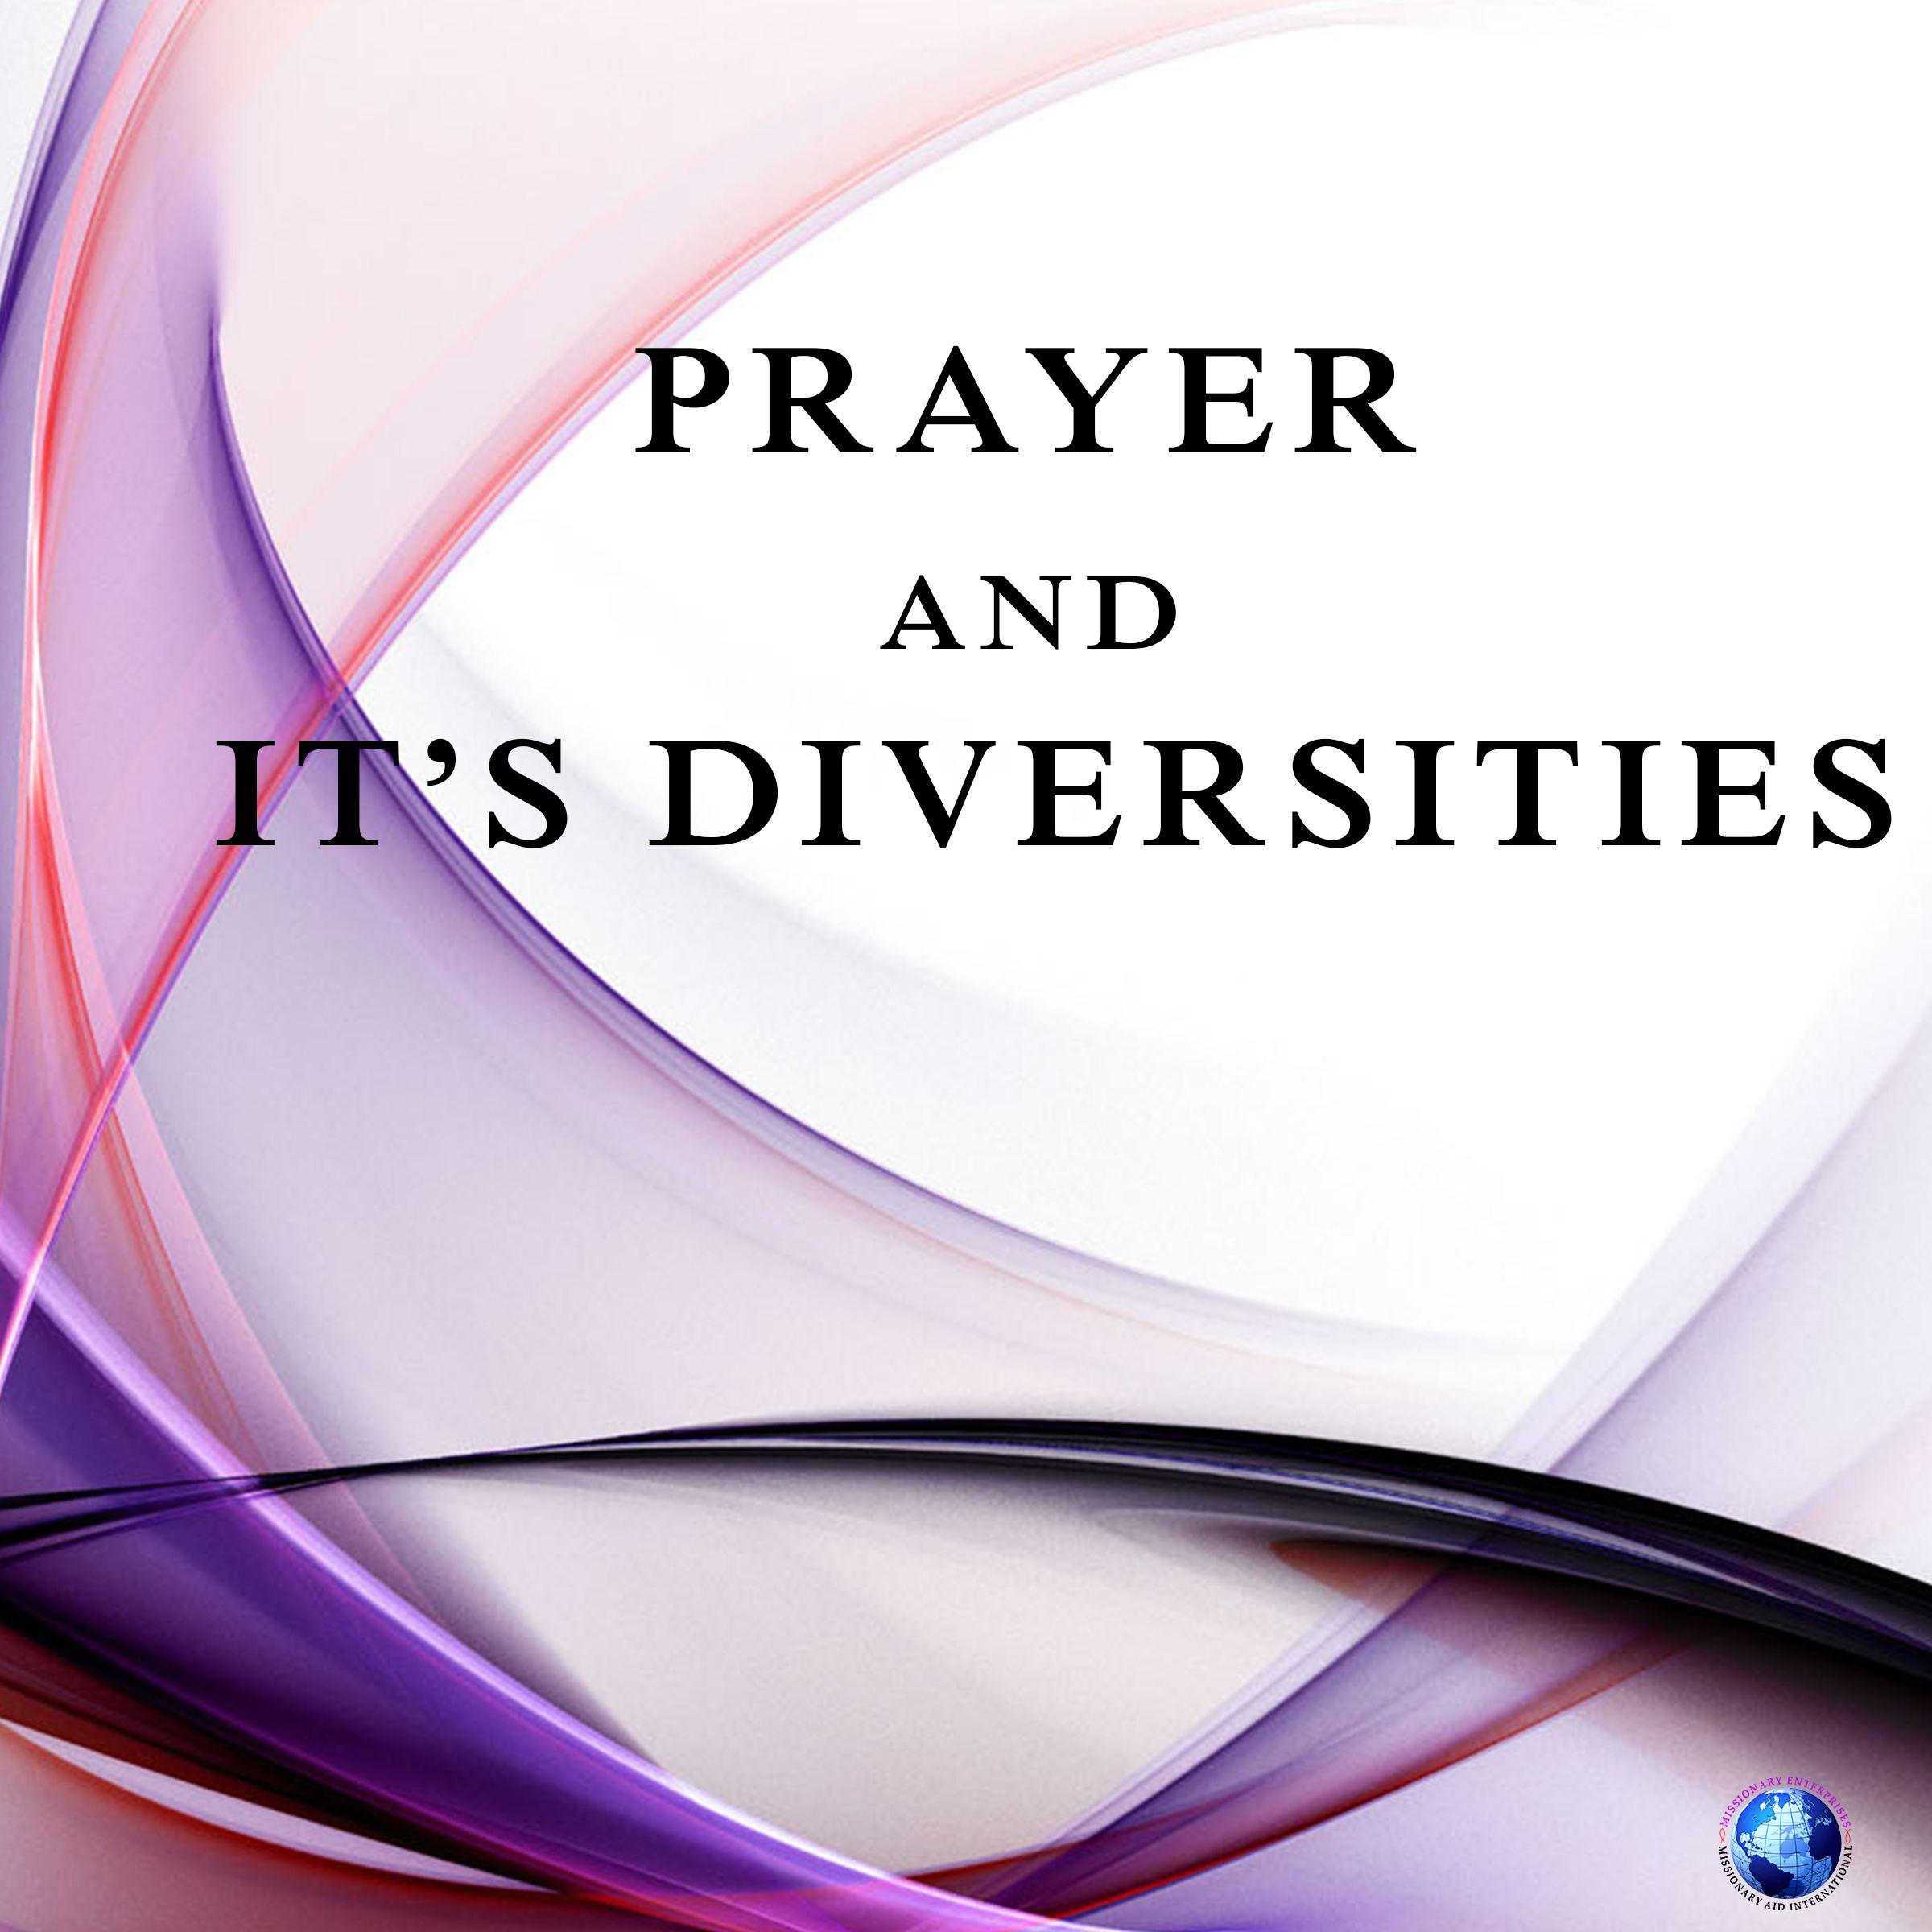 Prayer and It's Diversities